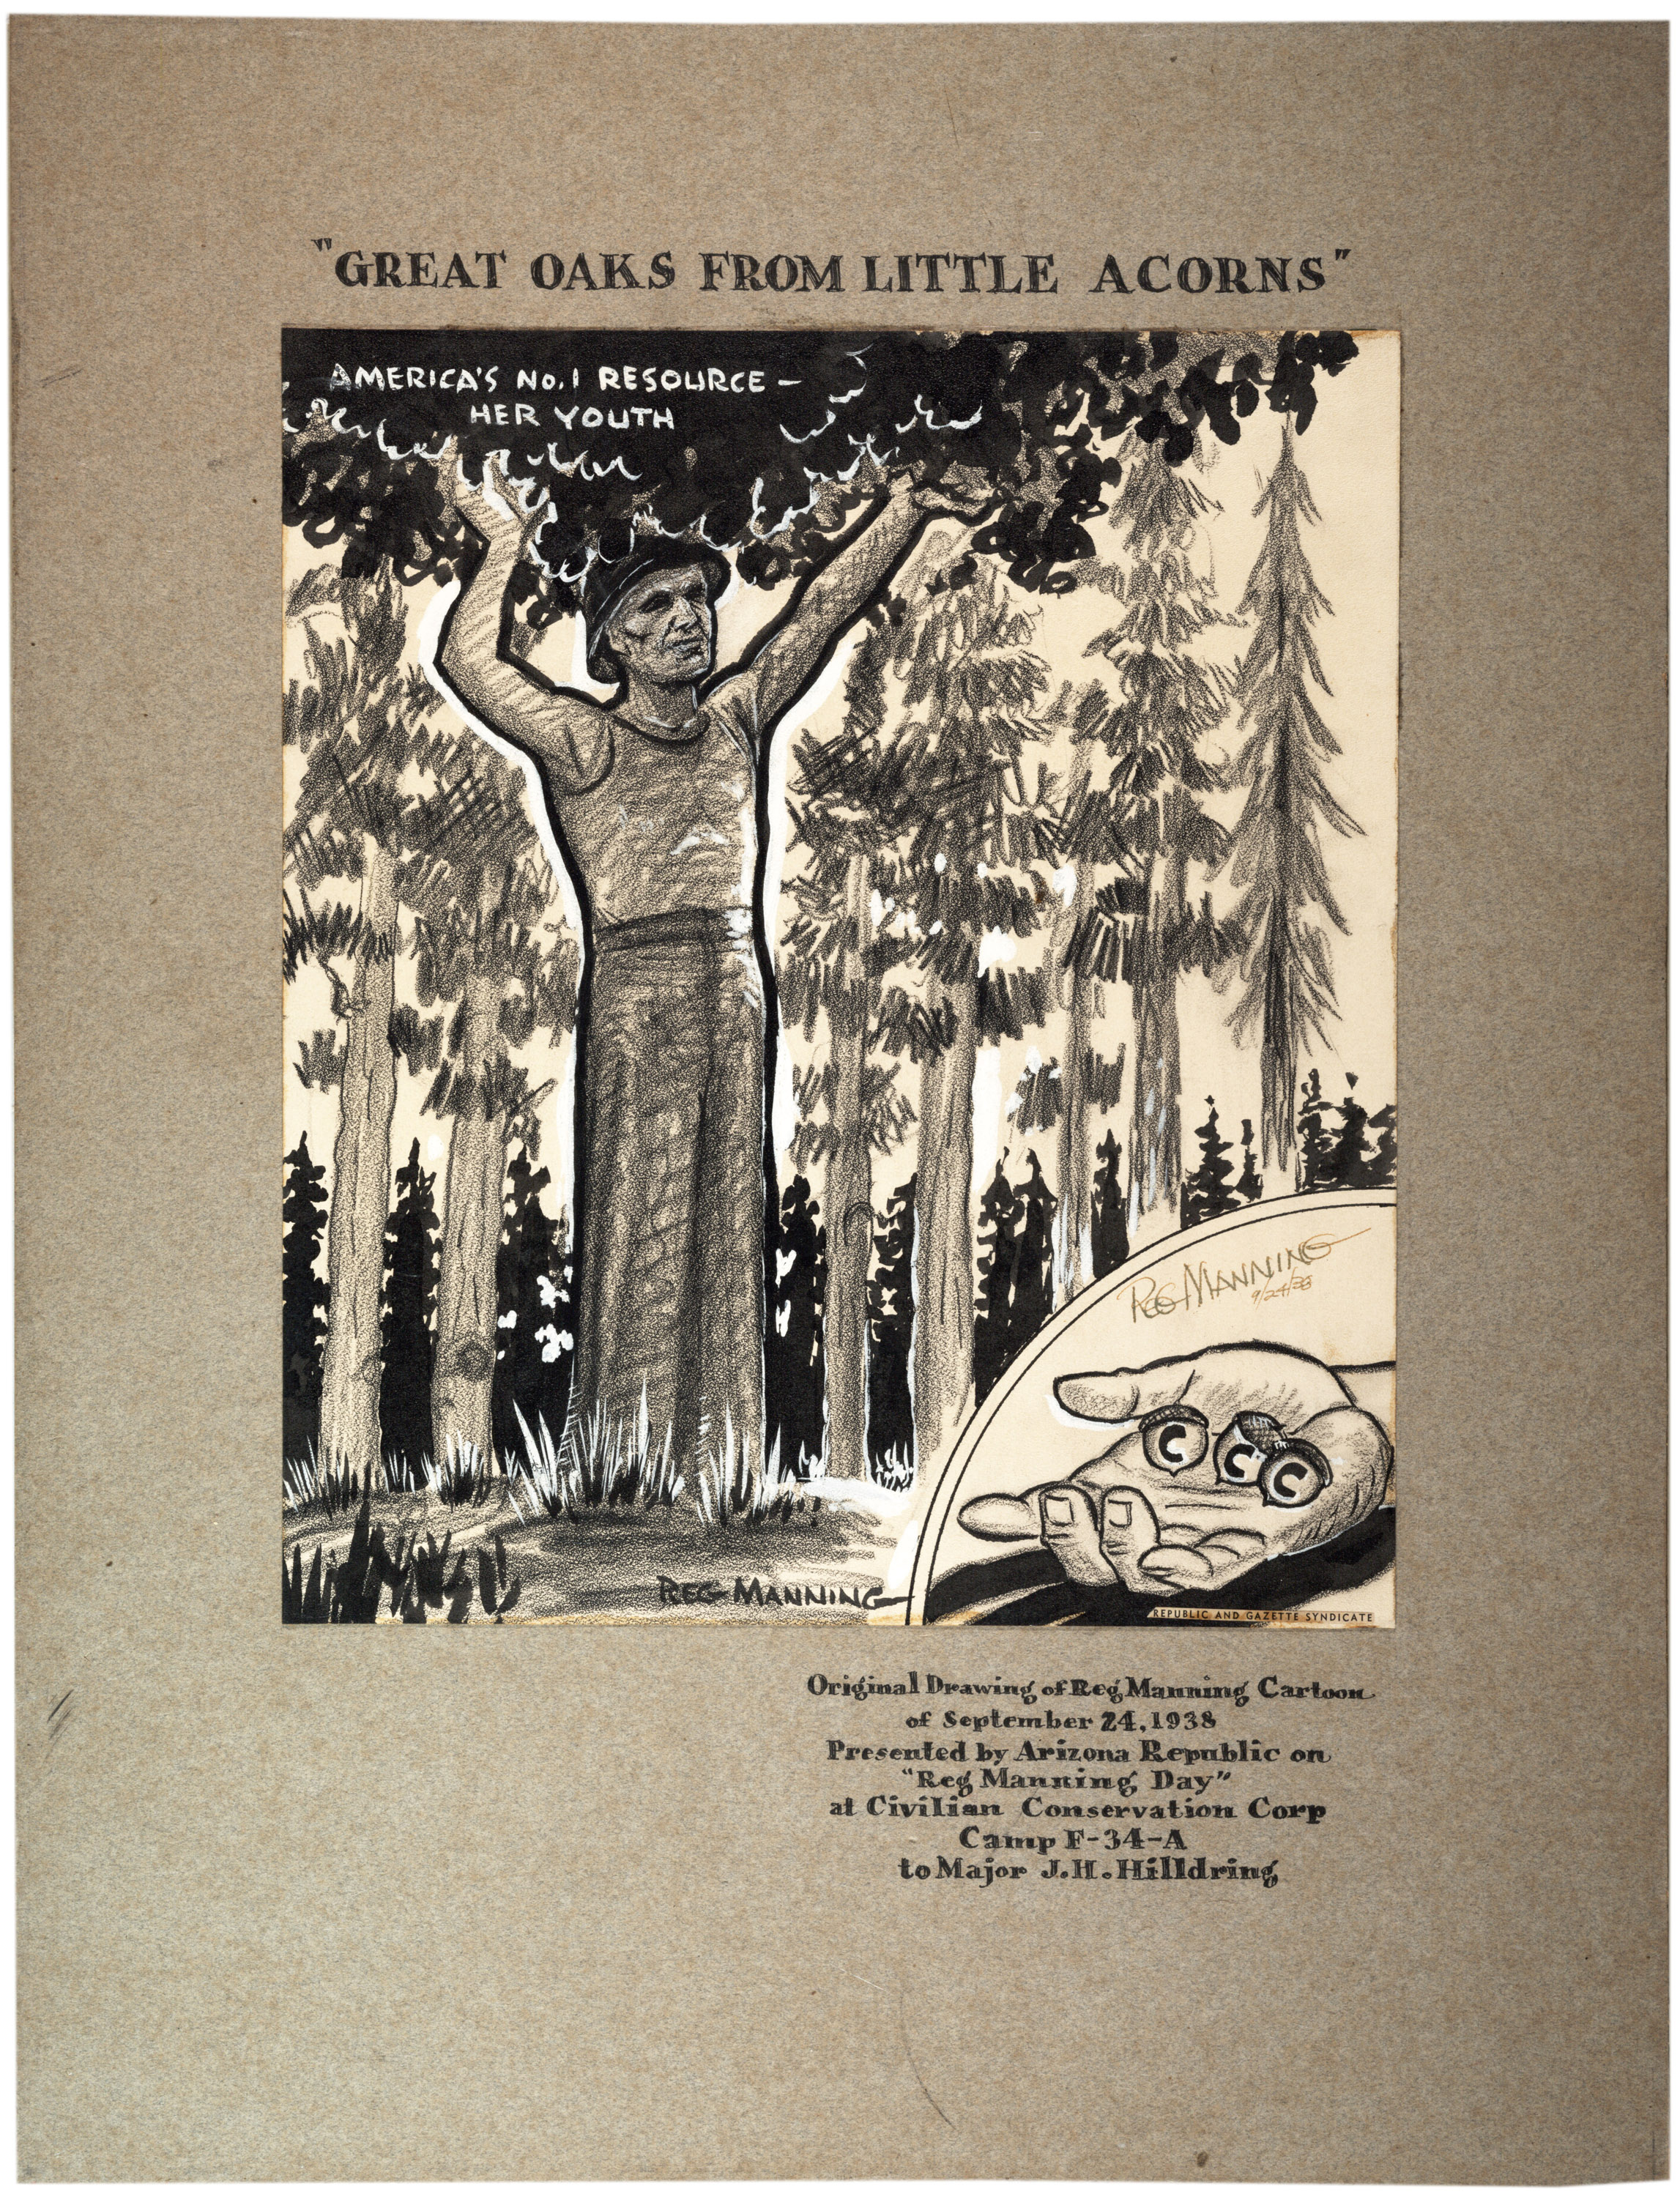 Enlistment poster for the Arizona Civilian Conservation Corps., September 24, 19